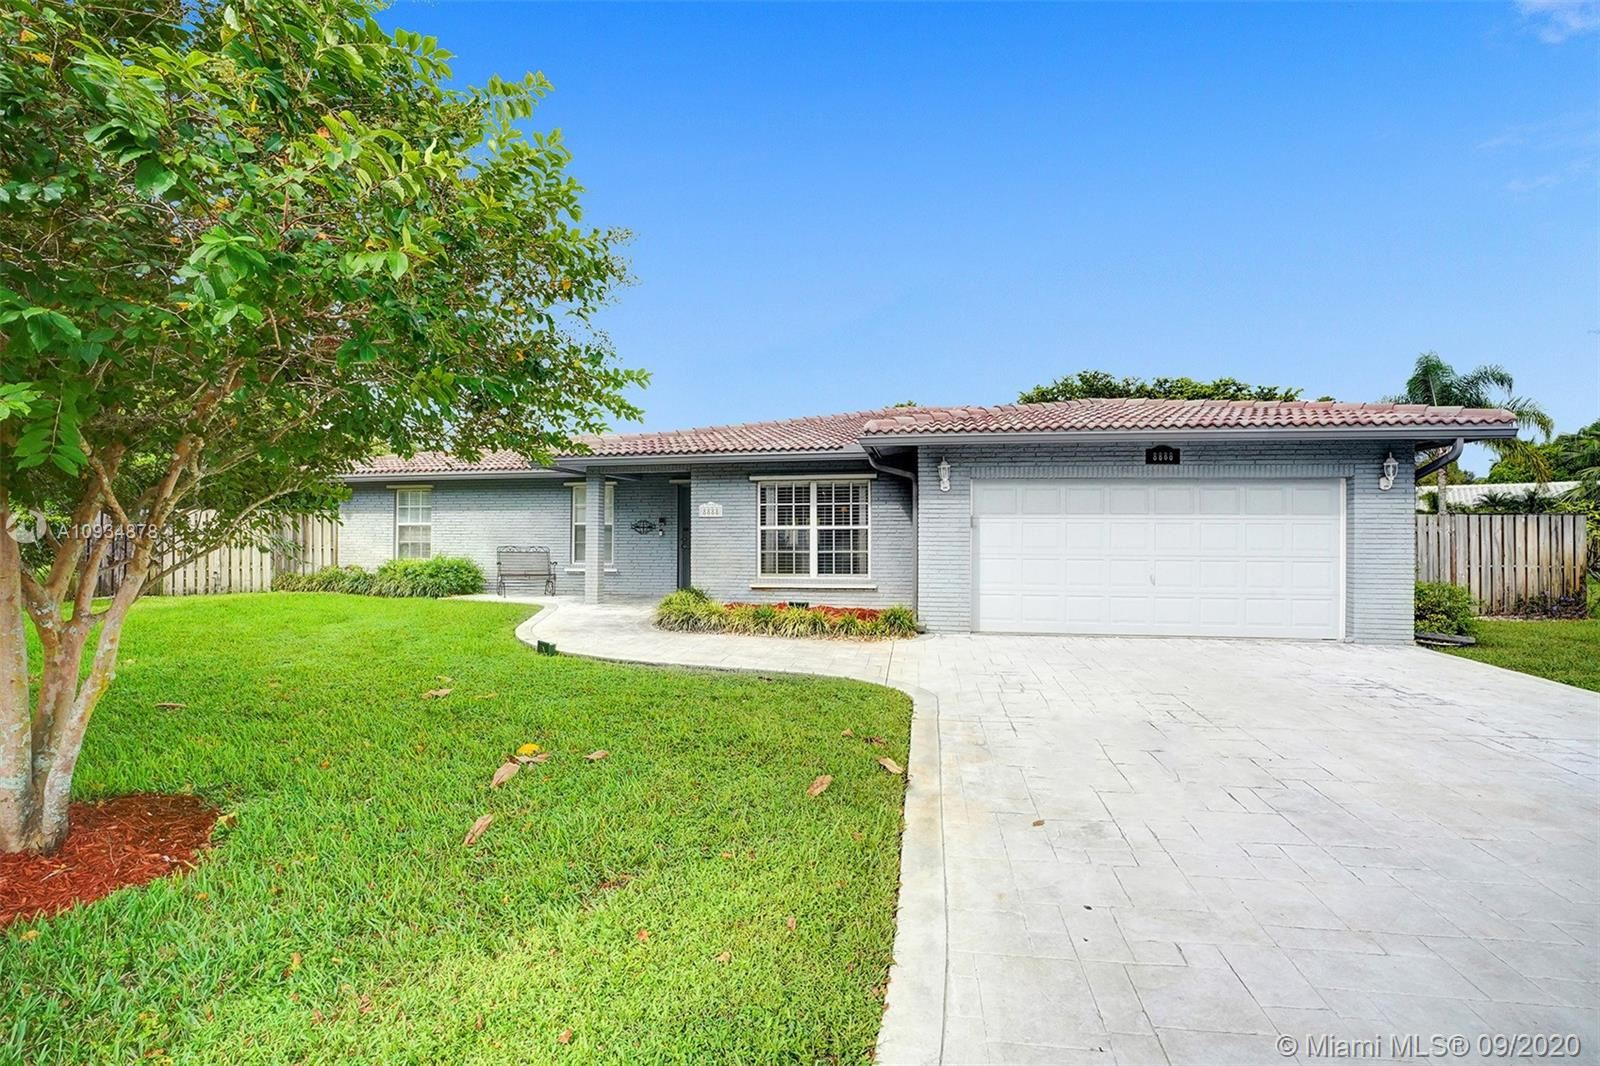 8888 NW 2nd Pl, Coral Springs, FL 33071 - #: A10934878